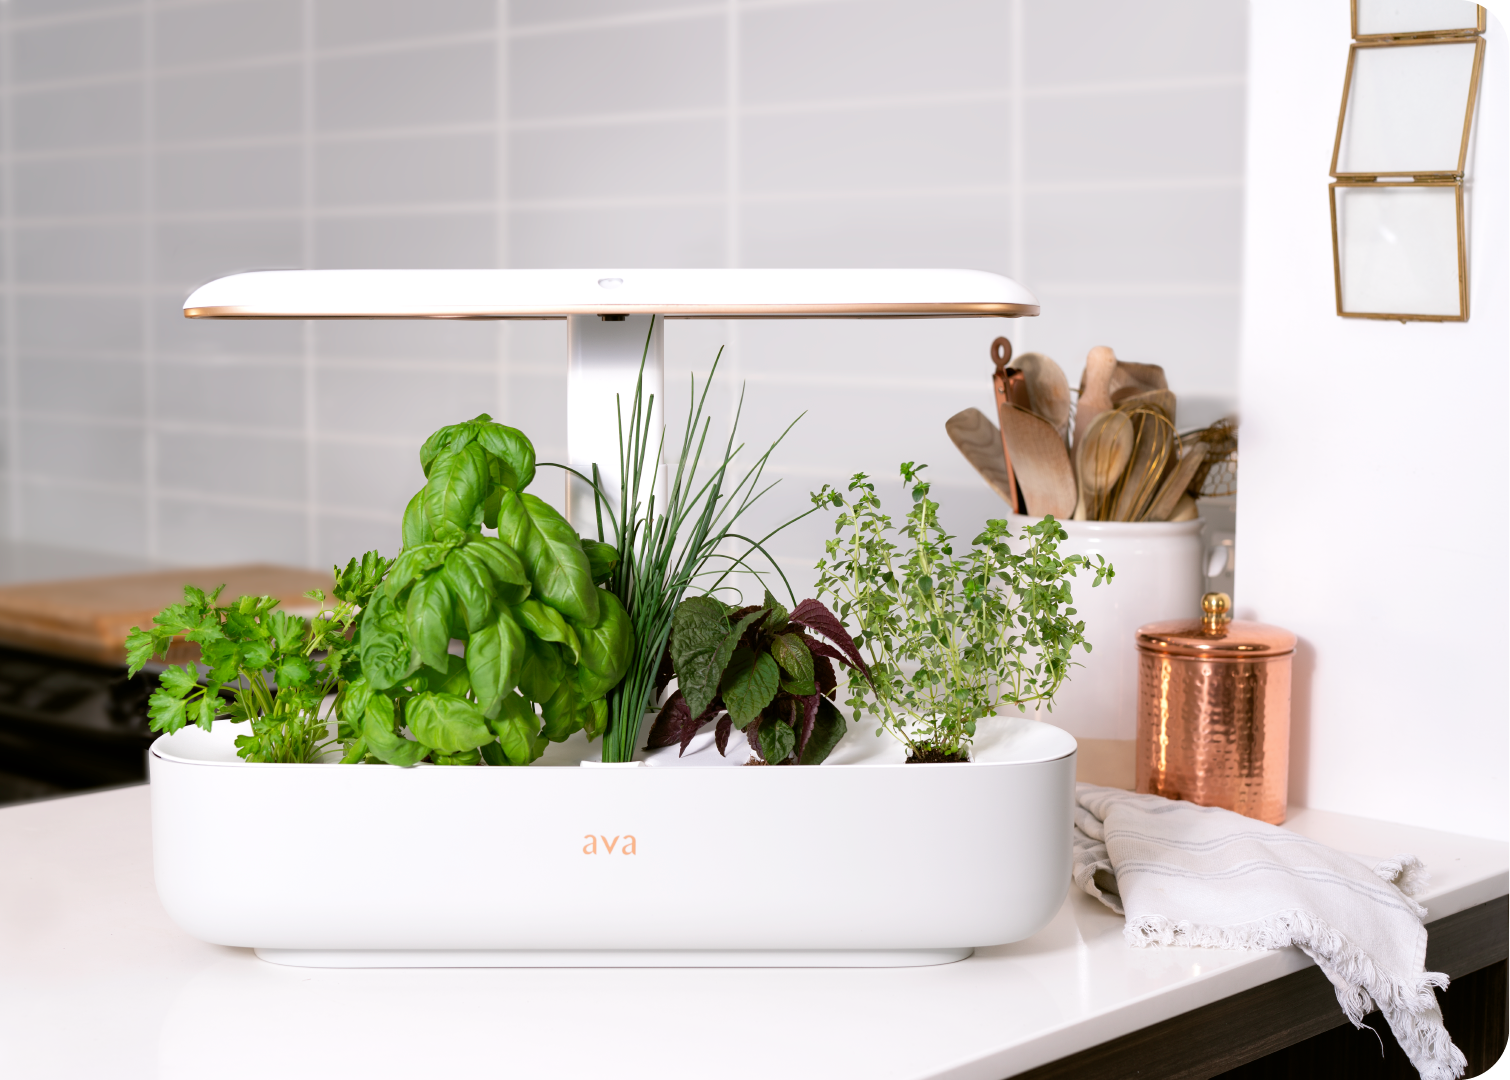 Automated gardening, naturally. - Ready-to-grow, soil-free compostable pods include everything needed for a plant to thrive. The pre-seeded plant pods are simply plug-and-play, and AVA Byte knows when to water or when to give a little light.